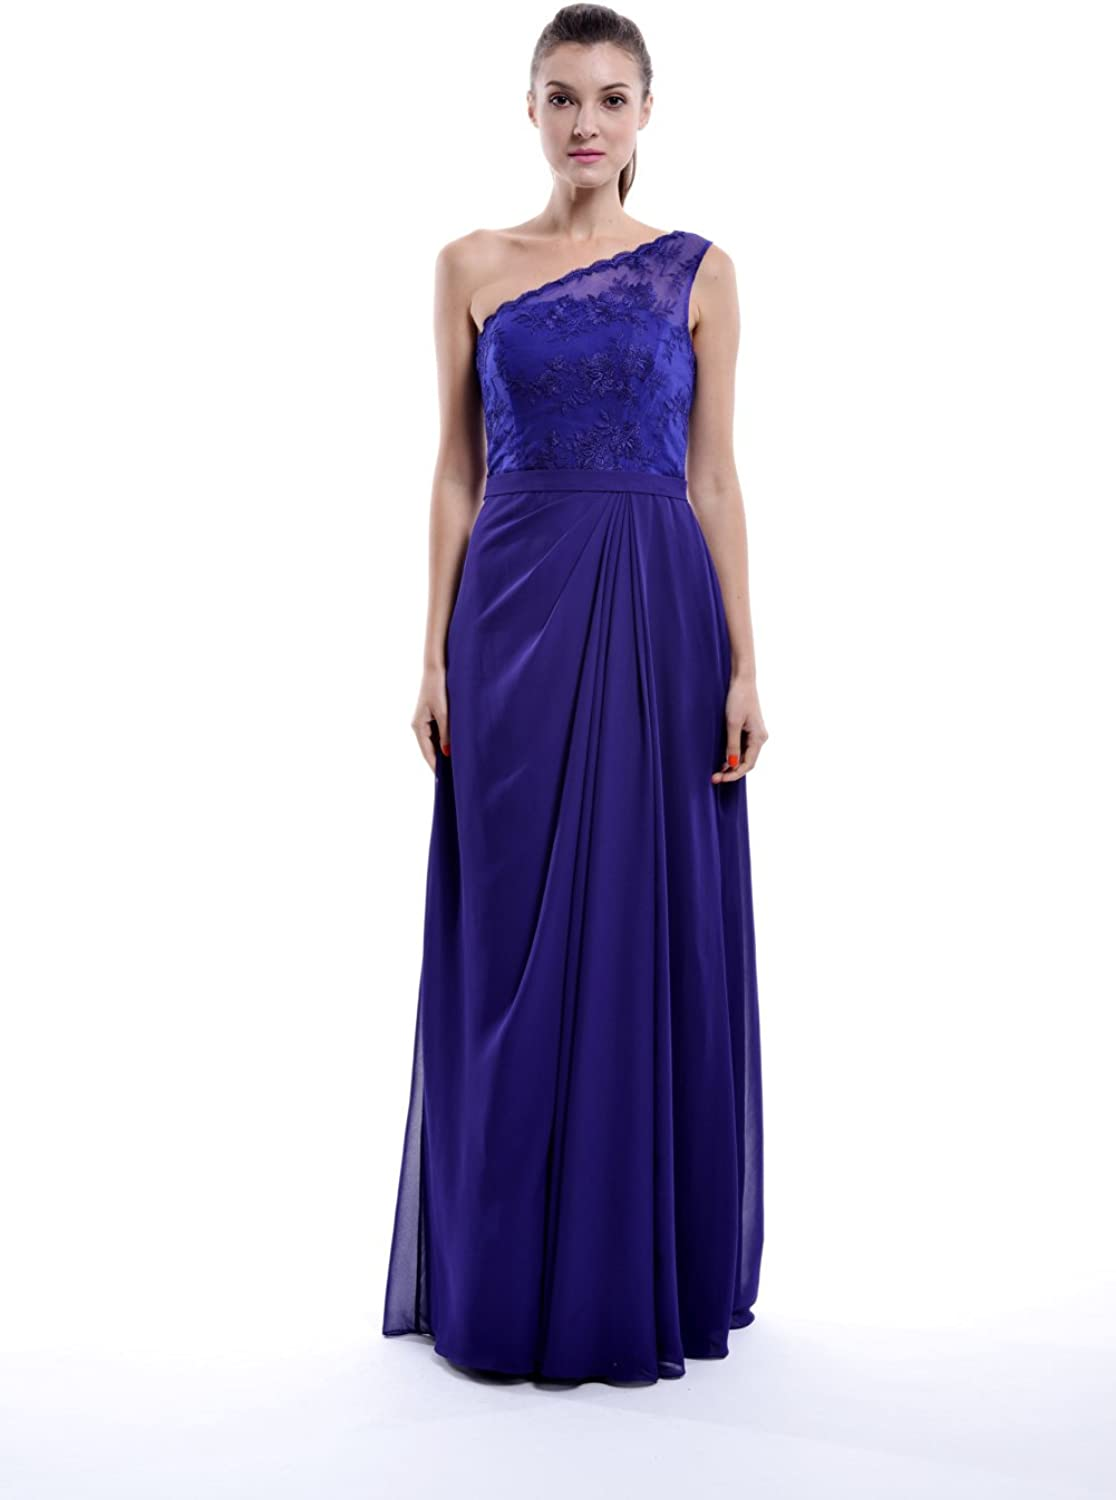 Vampal One Shoulder Asymmetrical Draped Column Bridesmaid Dress With Lace Top